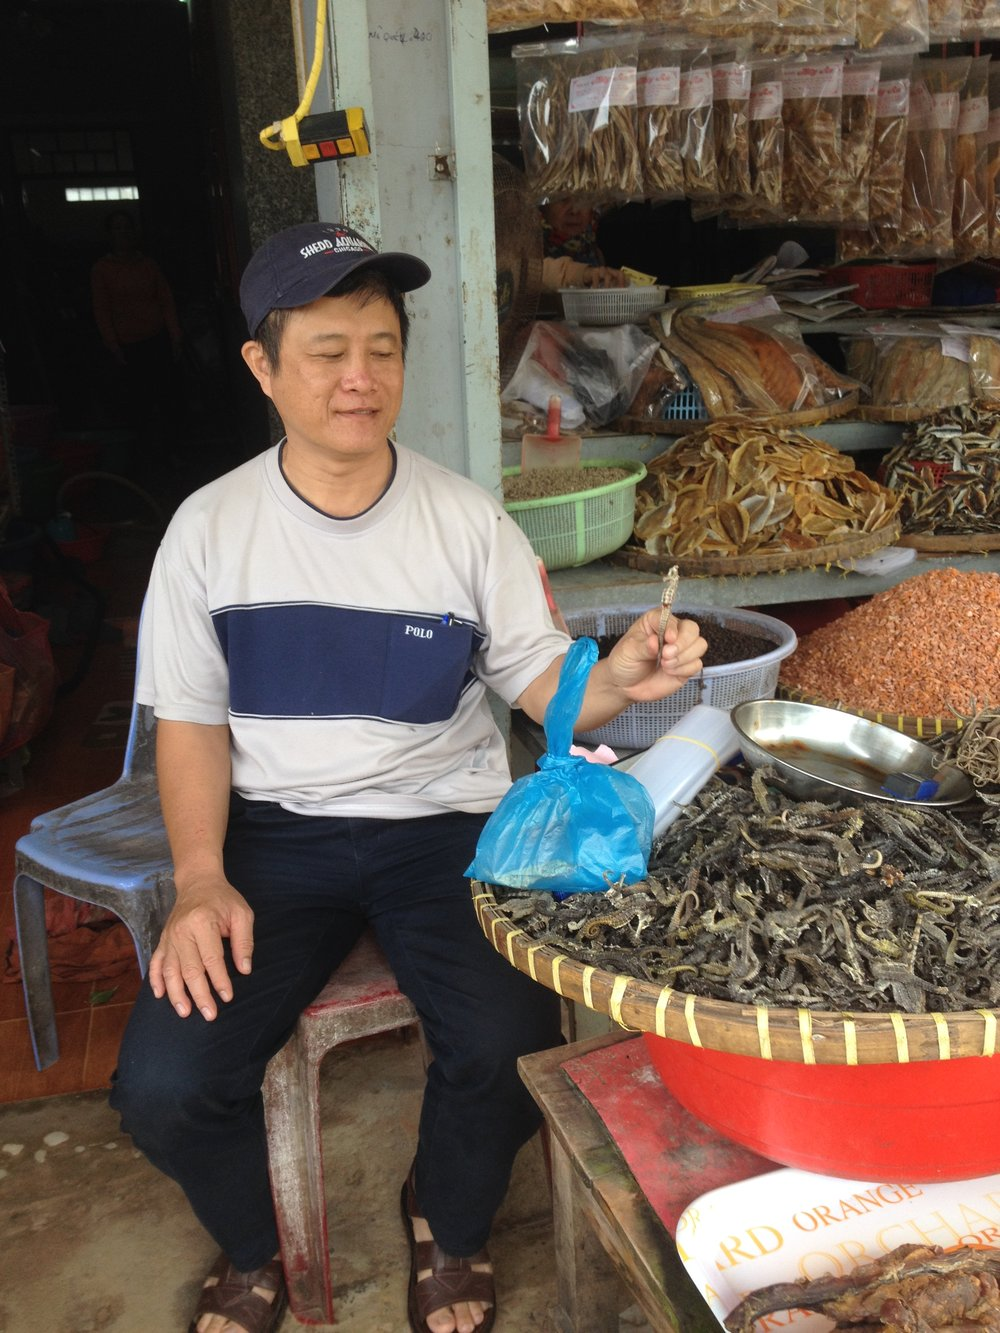 Our Project Seahorse researcher, Dr. Do Huu Hoang, sitting next to a large basket of dried seahorses in Song Cau, Phu Yen Province.  Dr. Hoang interviewed over 146 fishers, buyers and aquaculturists across eight provinces in Viet Nam from November 2016 to January 2017